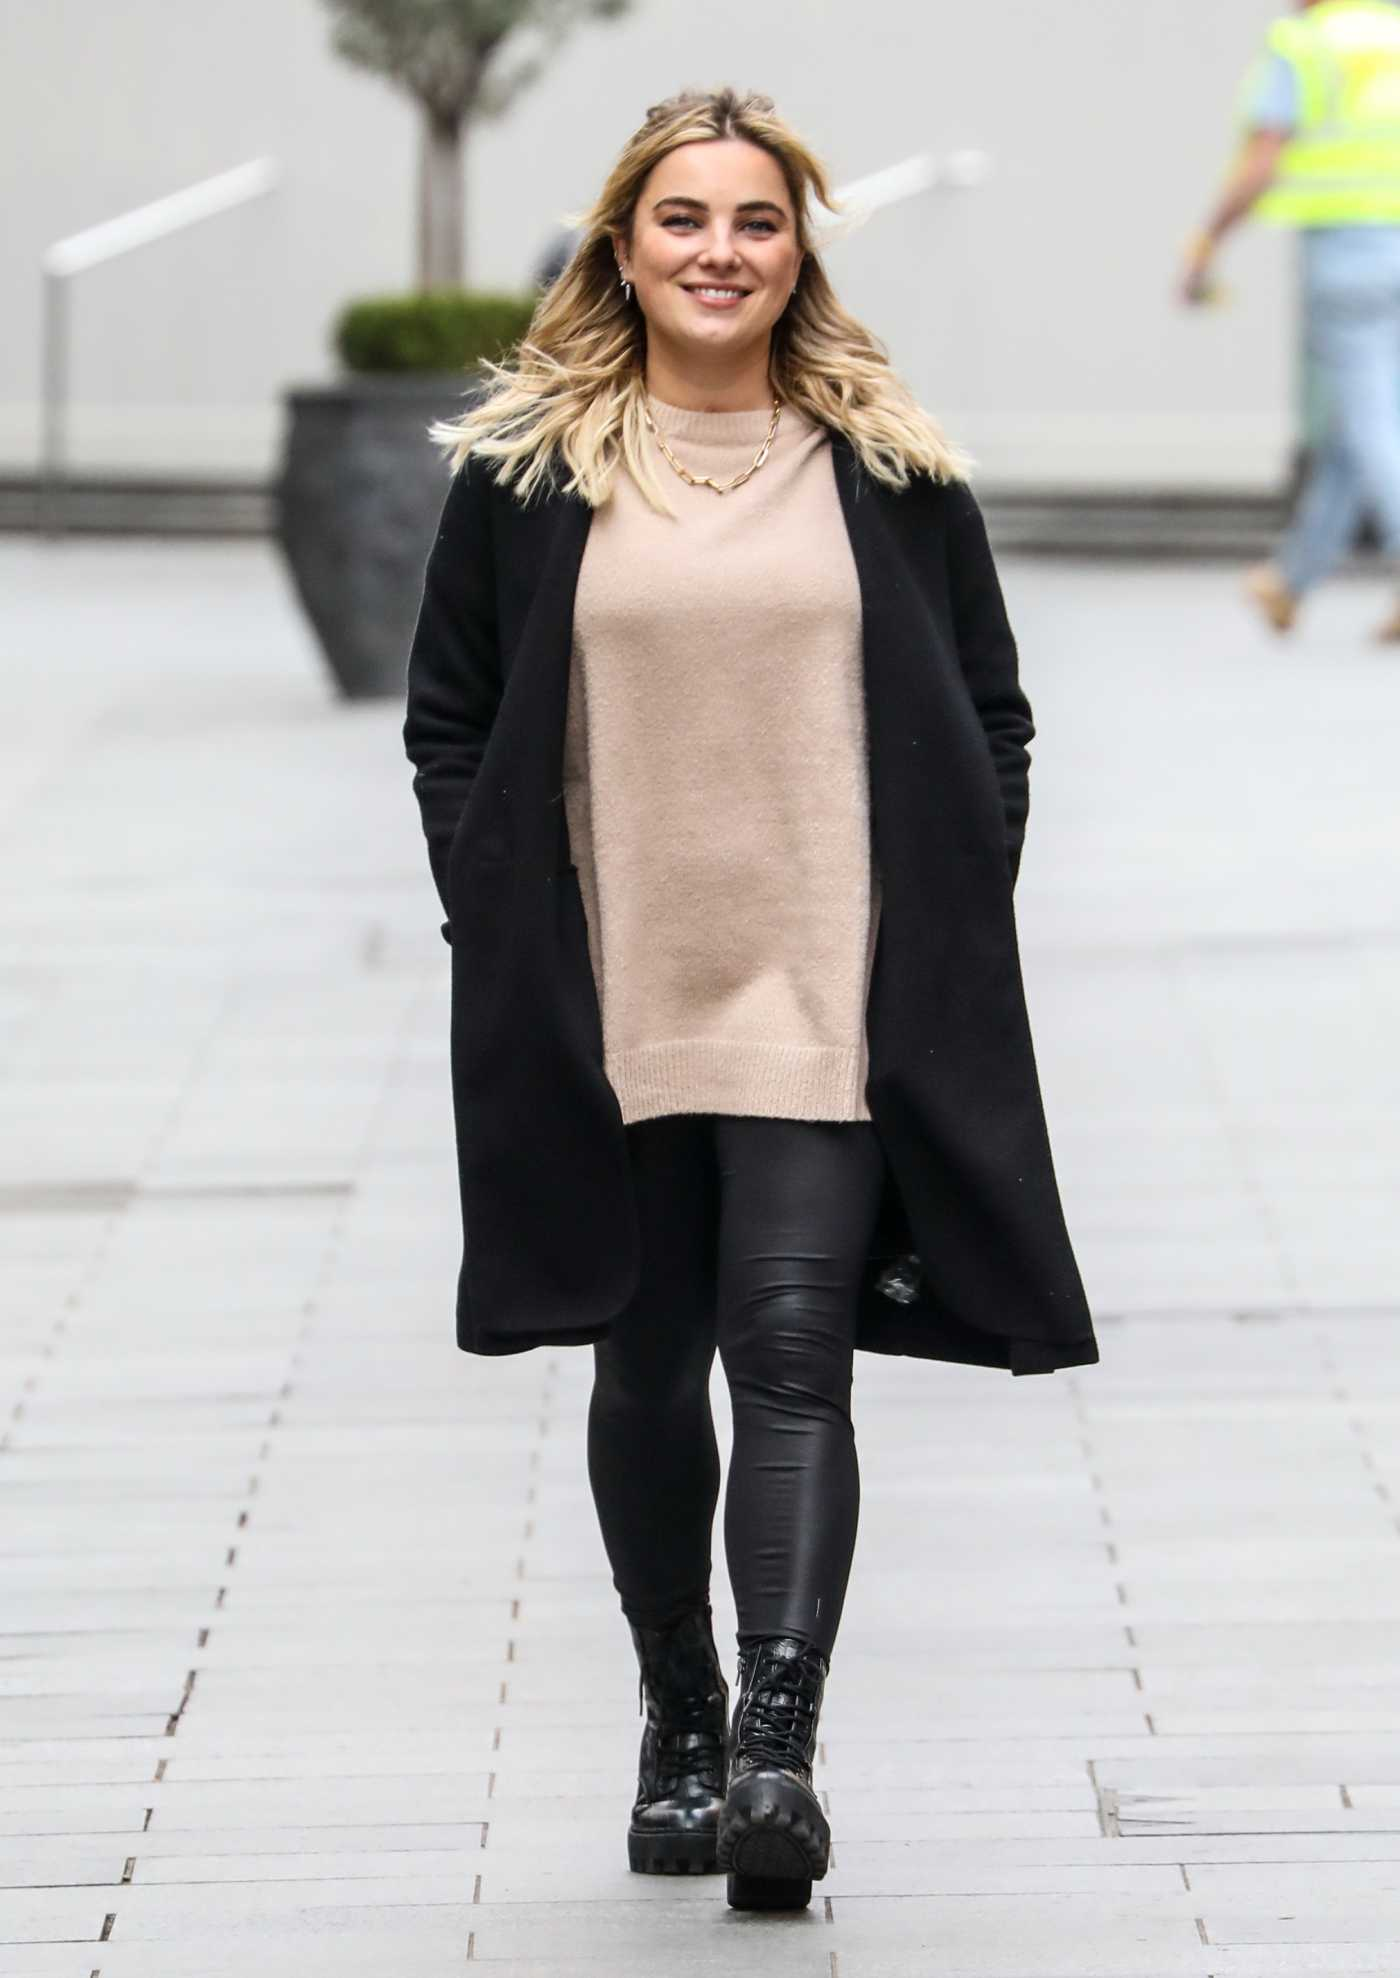 Sian Welby in a Black Coat Leaves the Global Radio Studios in London 11/27/2020